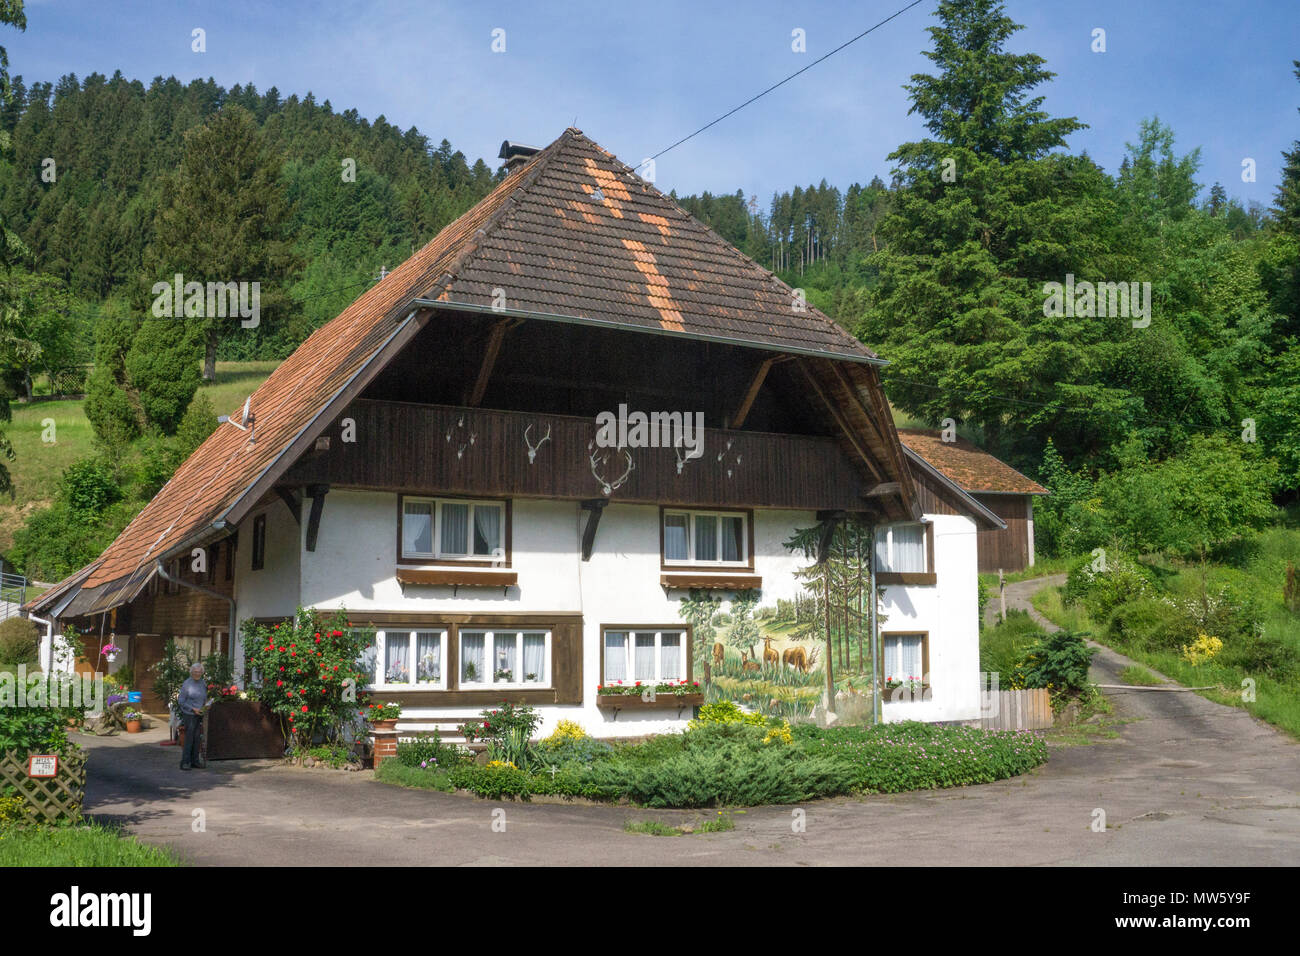 Typical Black forest house at Gutach village, Black Forest, Baden-Wuerttemberg, Germany, Europe - Stock Image